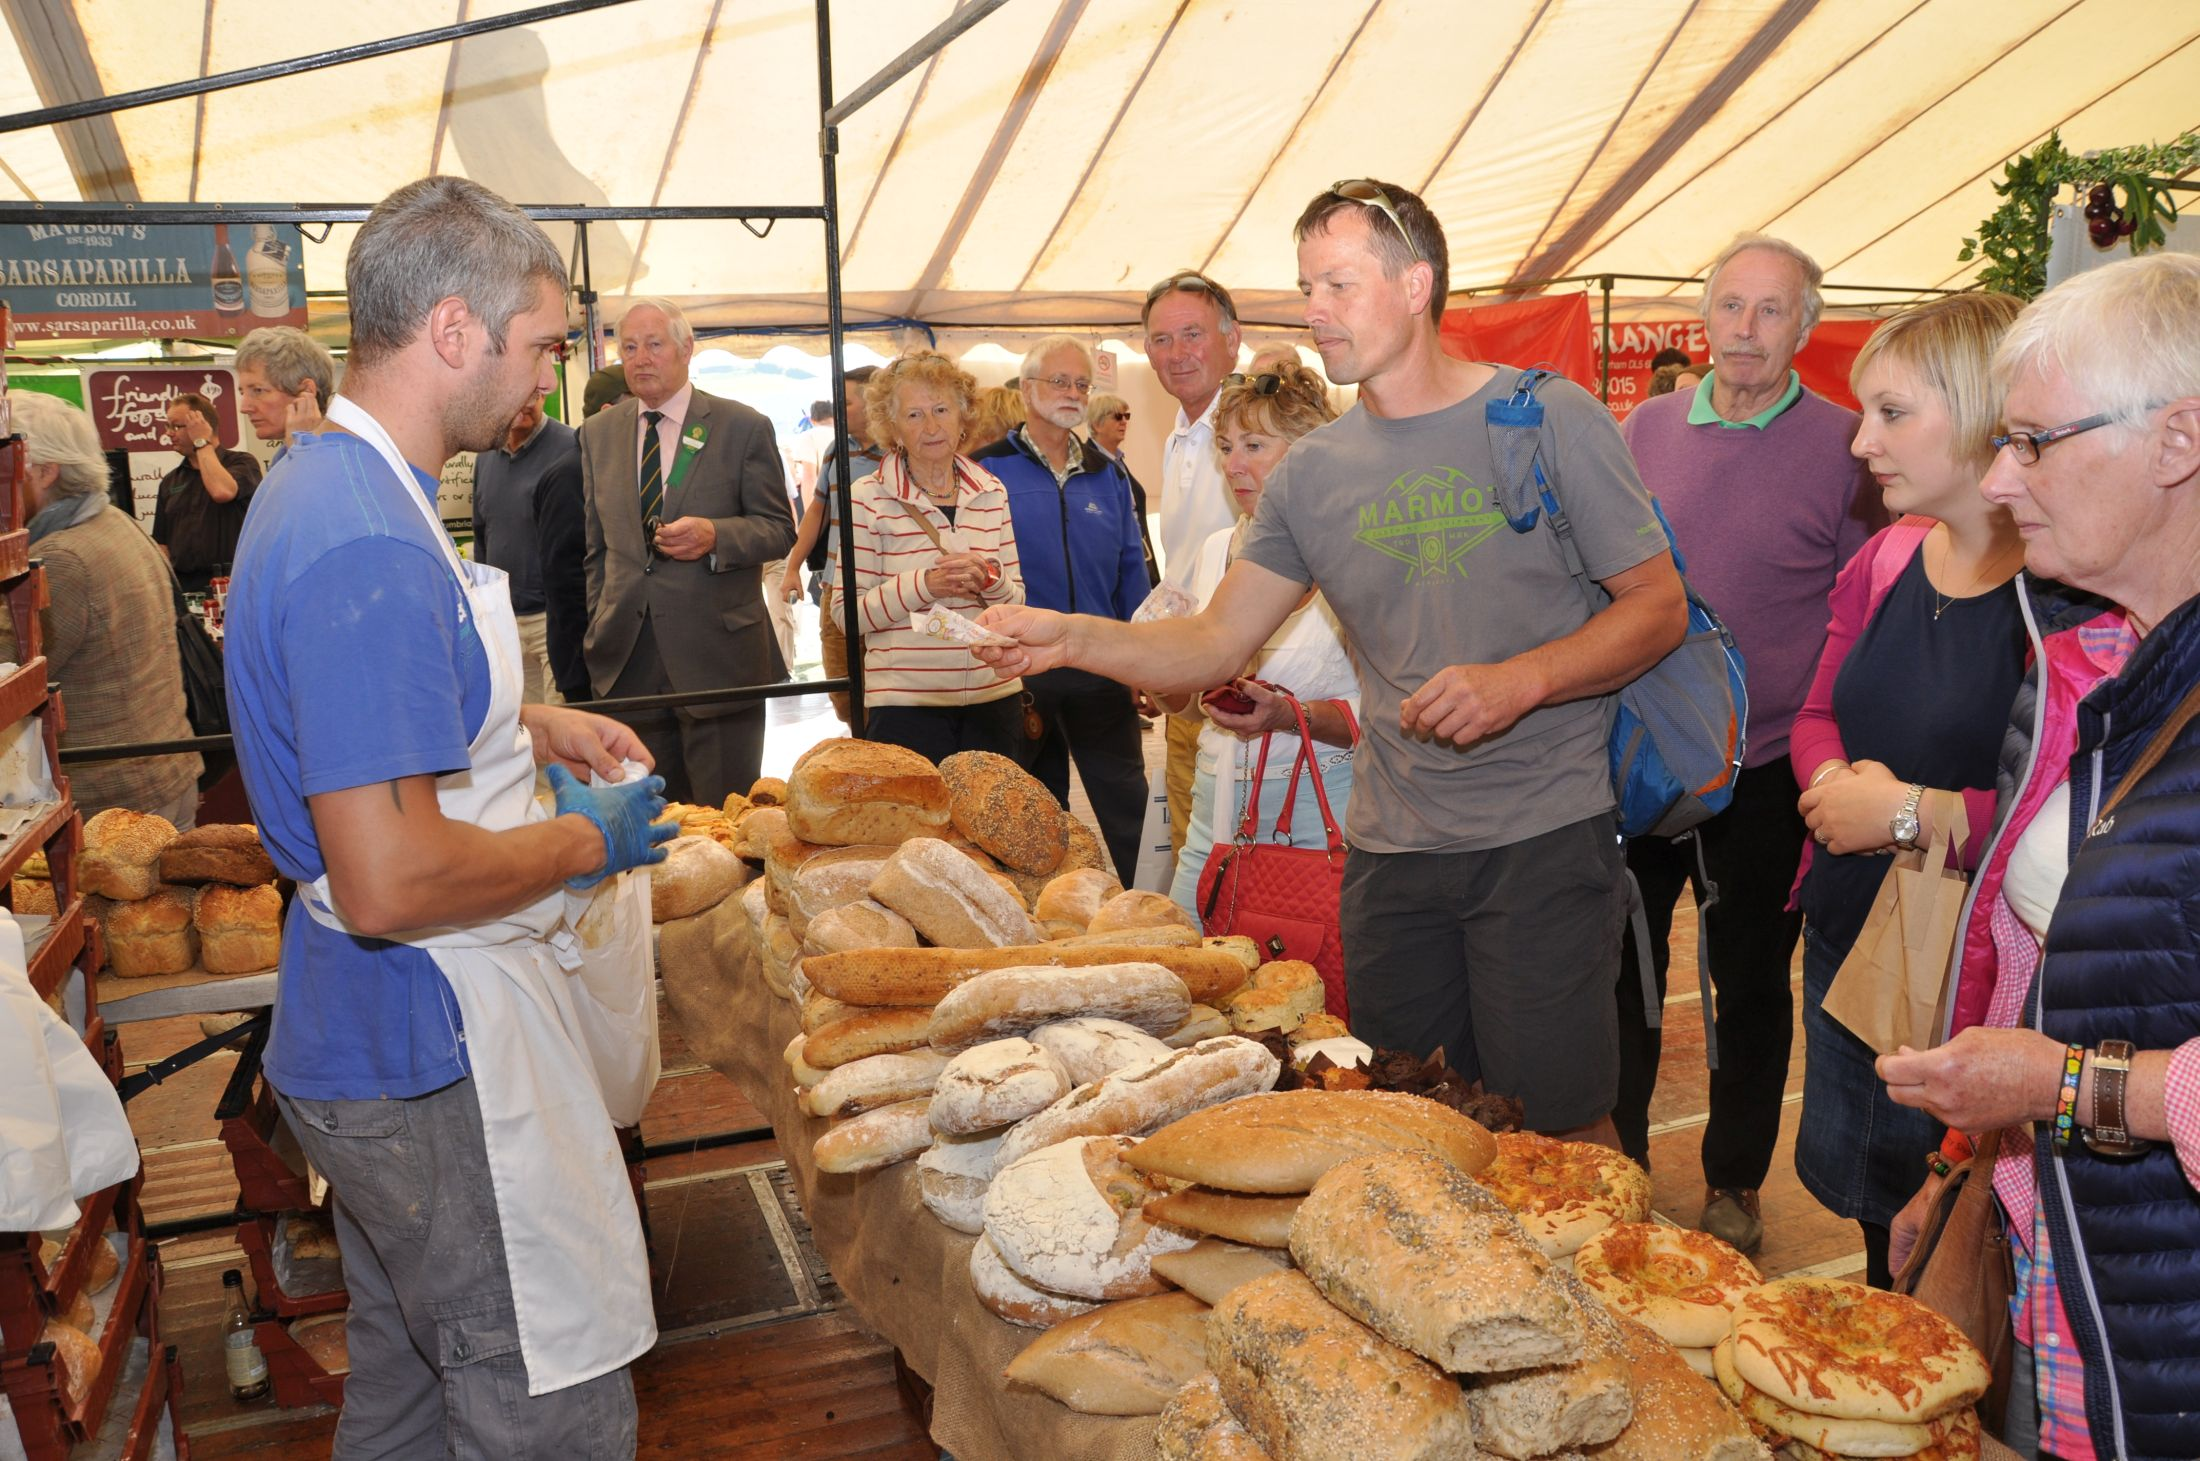 Artisan food tent at the Westmorland County Show